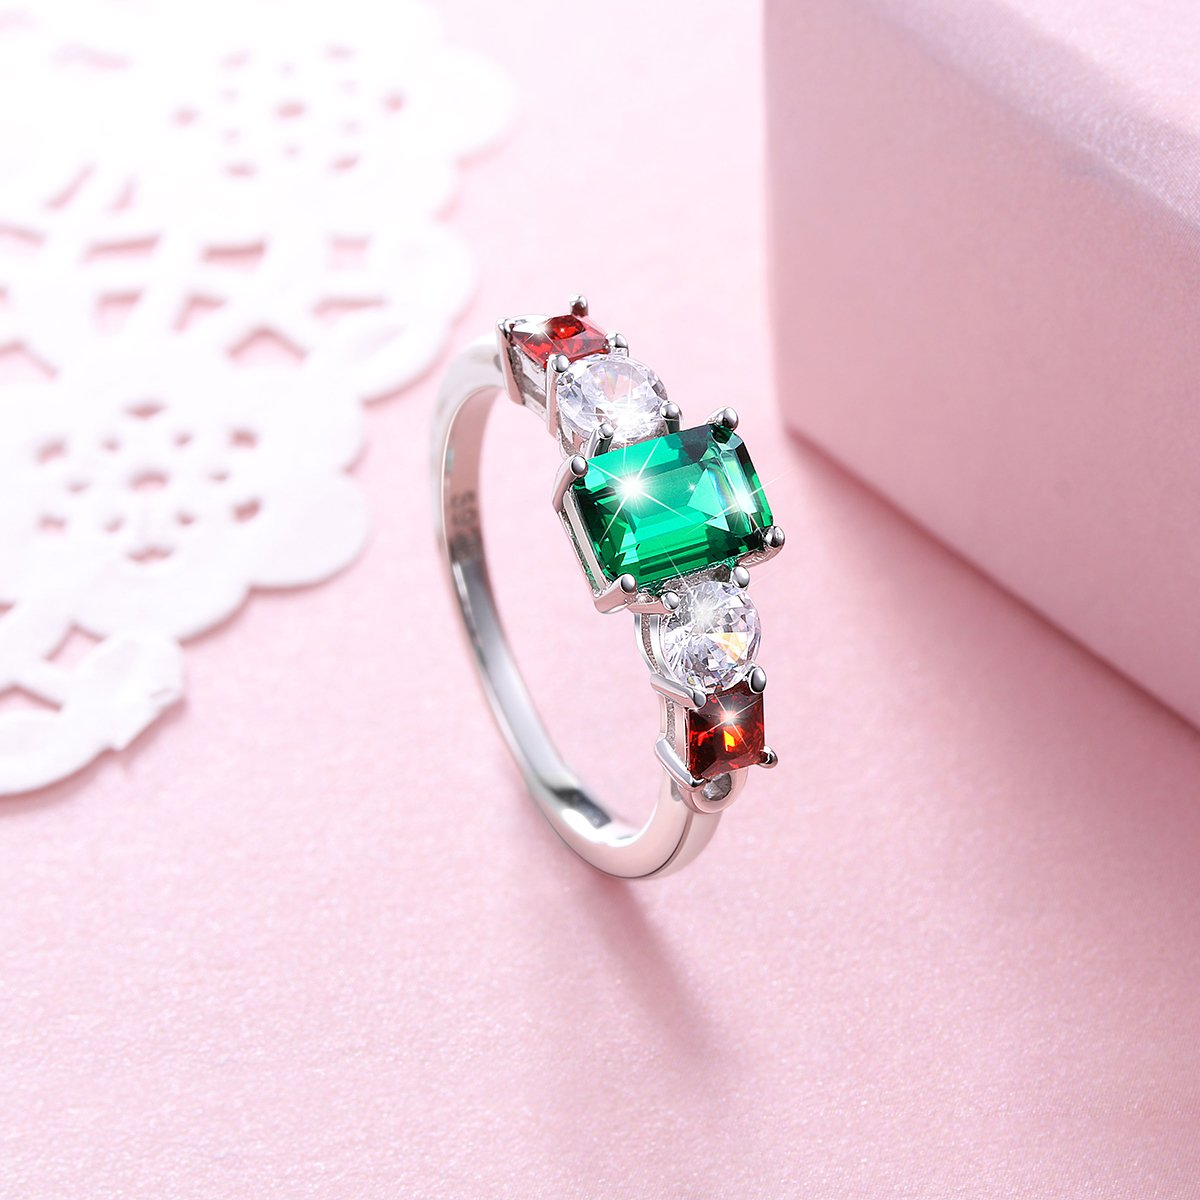 Vintage Elegant Jewelry 925 Sterling Silver Green and Red Cz Ring for Mom Size 9 by SILVER MOUNTAIN (Image #3)